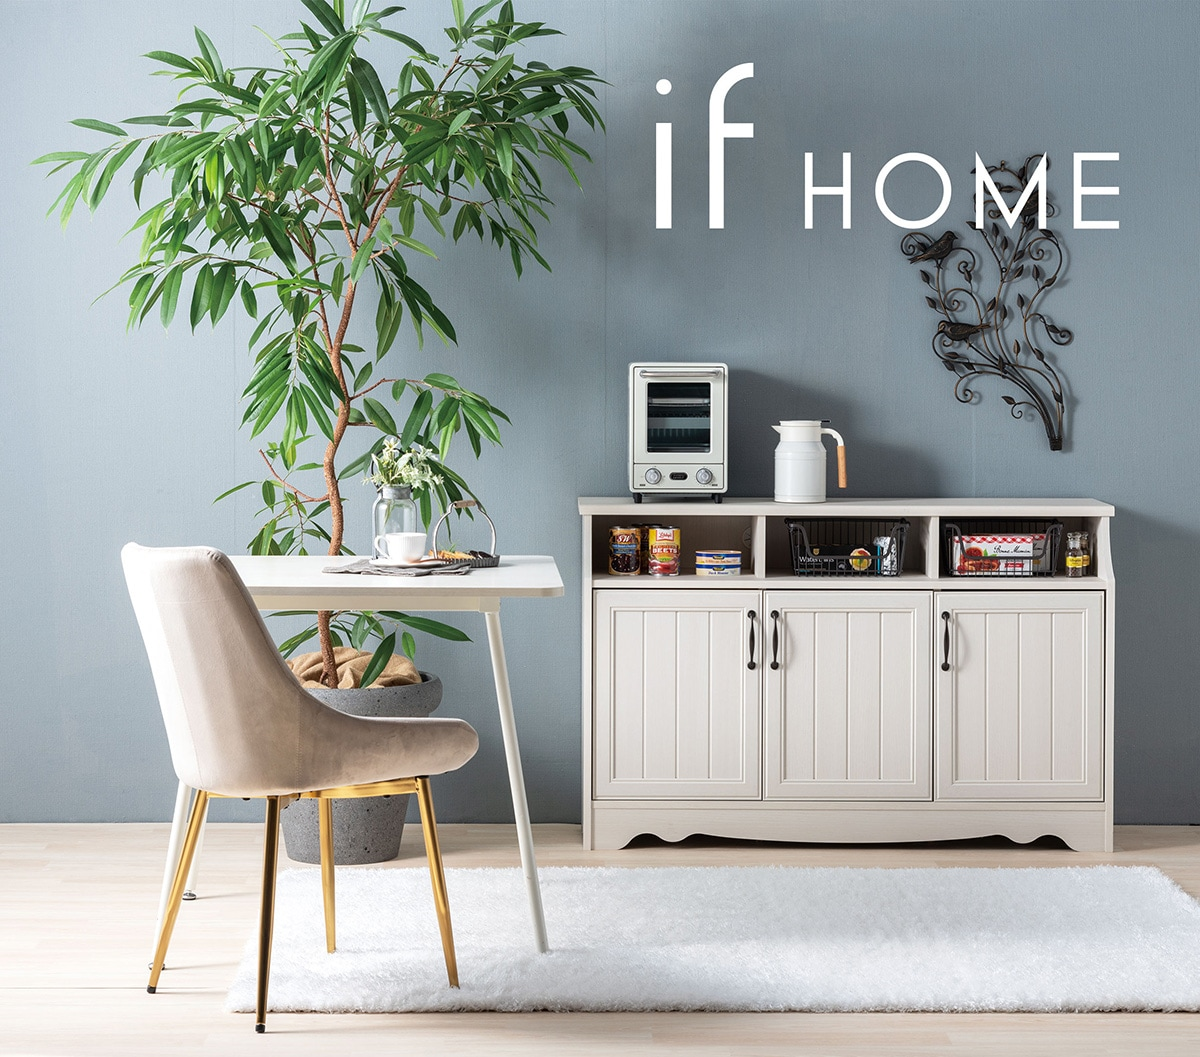 if HOME